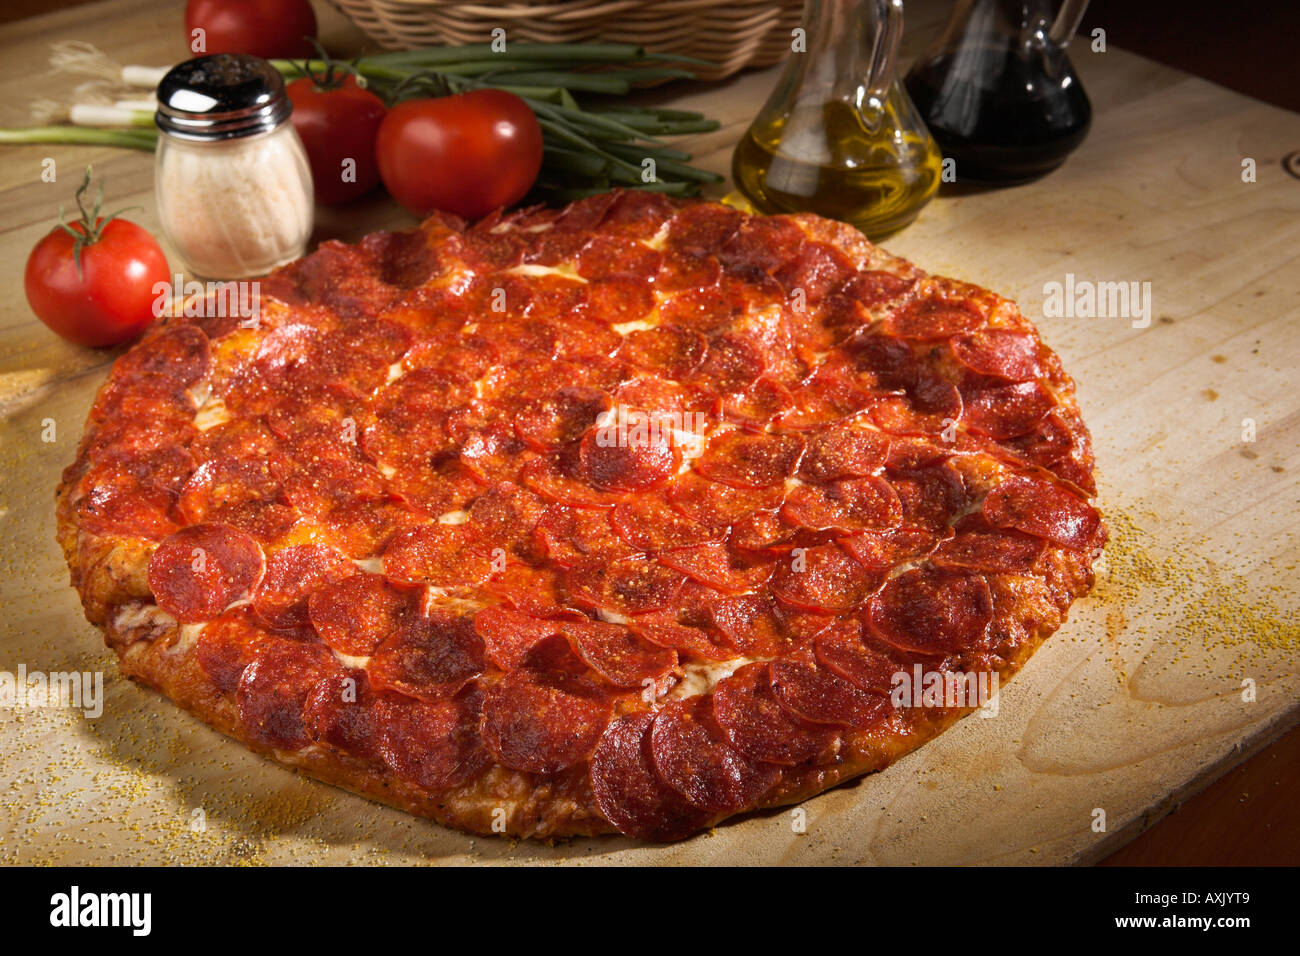 baked pepperoni meat pizza with cheese sauce bred crust brown on wood cutting board next to oil basket tomatoes - Stock Image